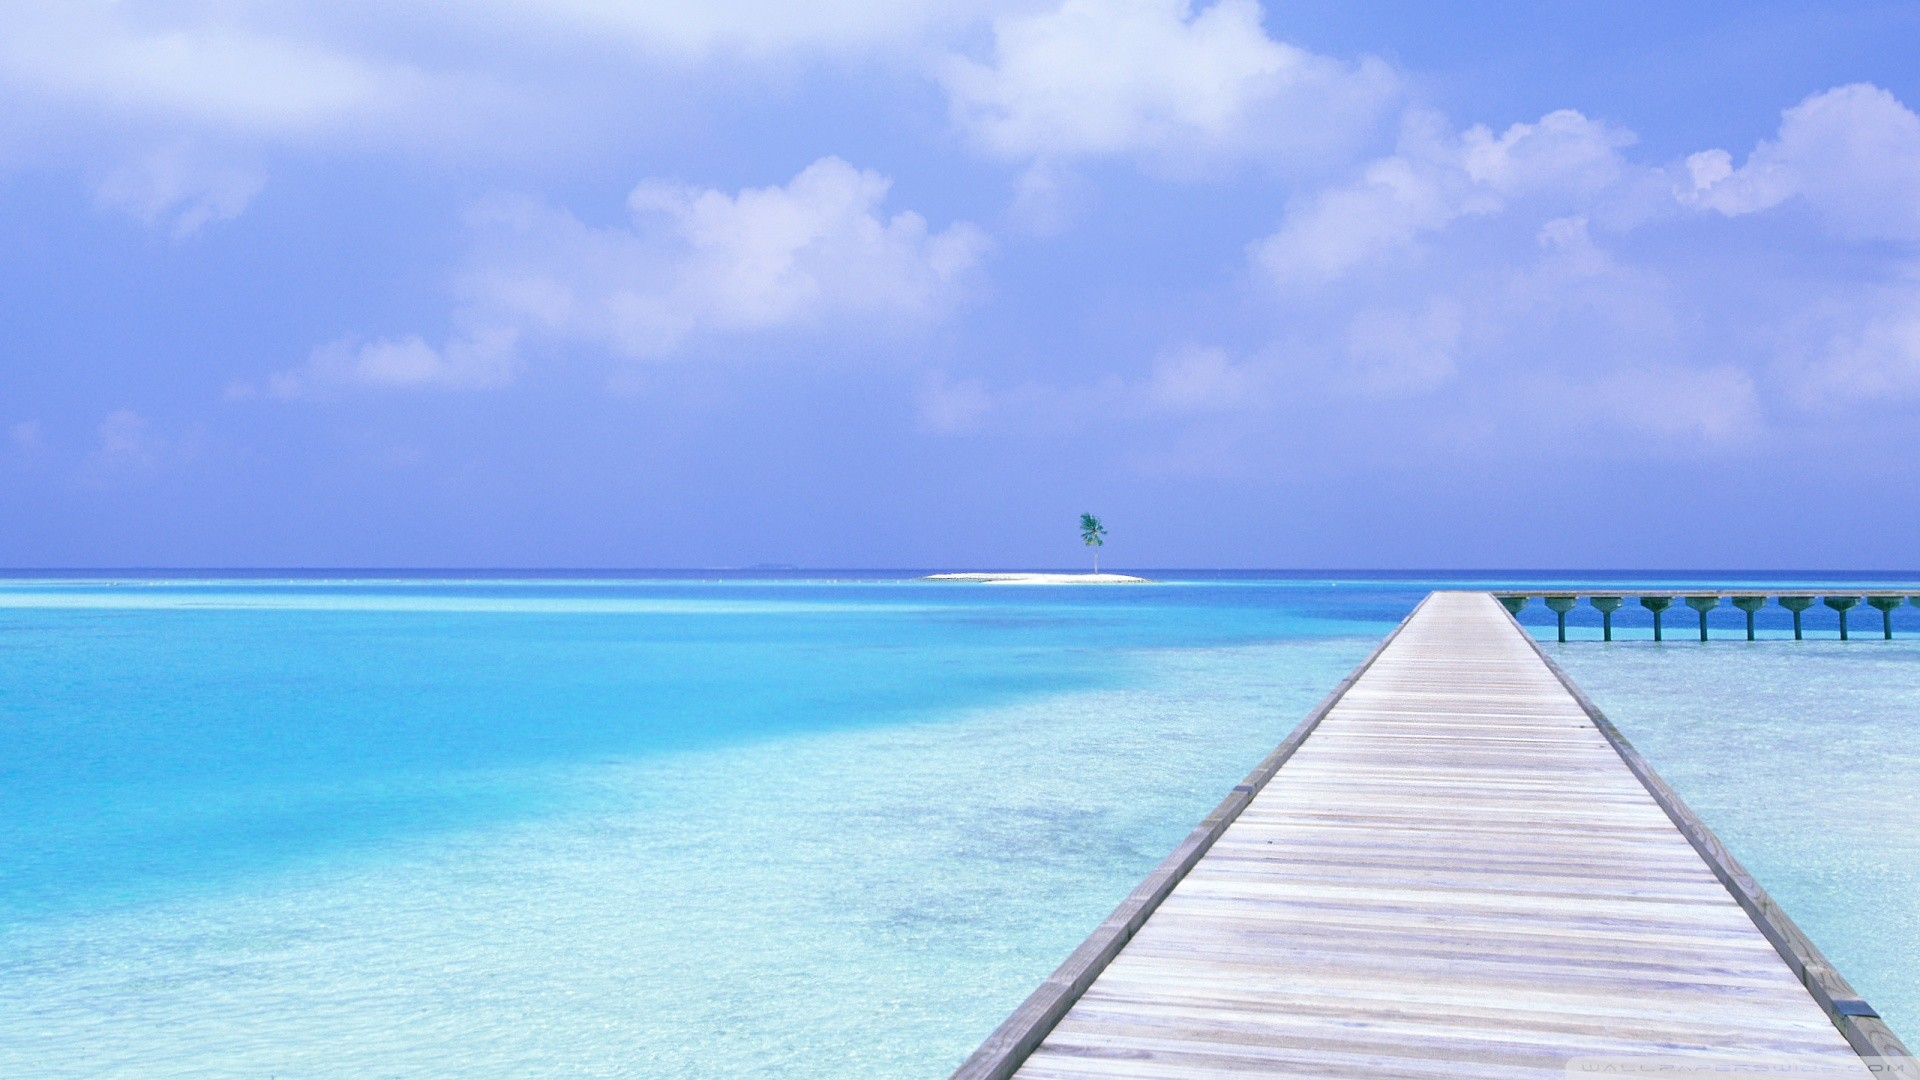 1920x1080 Over Blue Ocean Wallpaper  Footbridge, Over, Blue, Ocean .